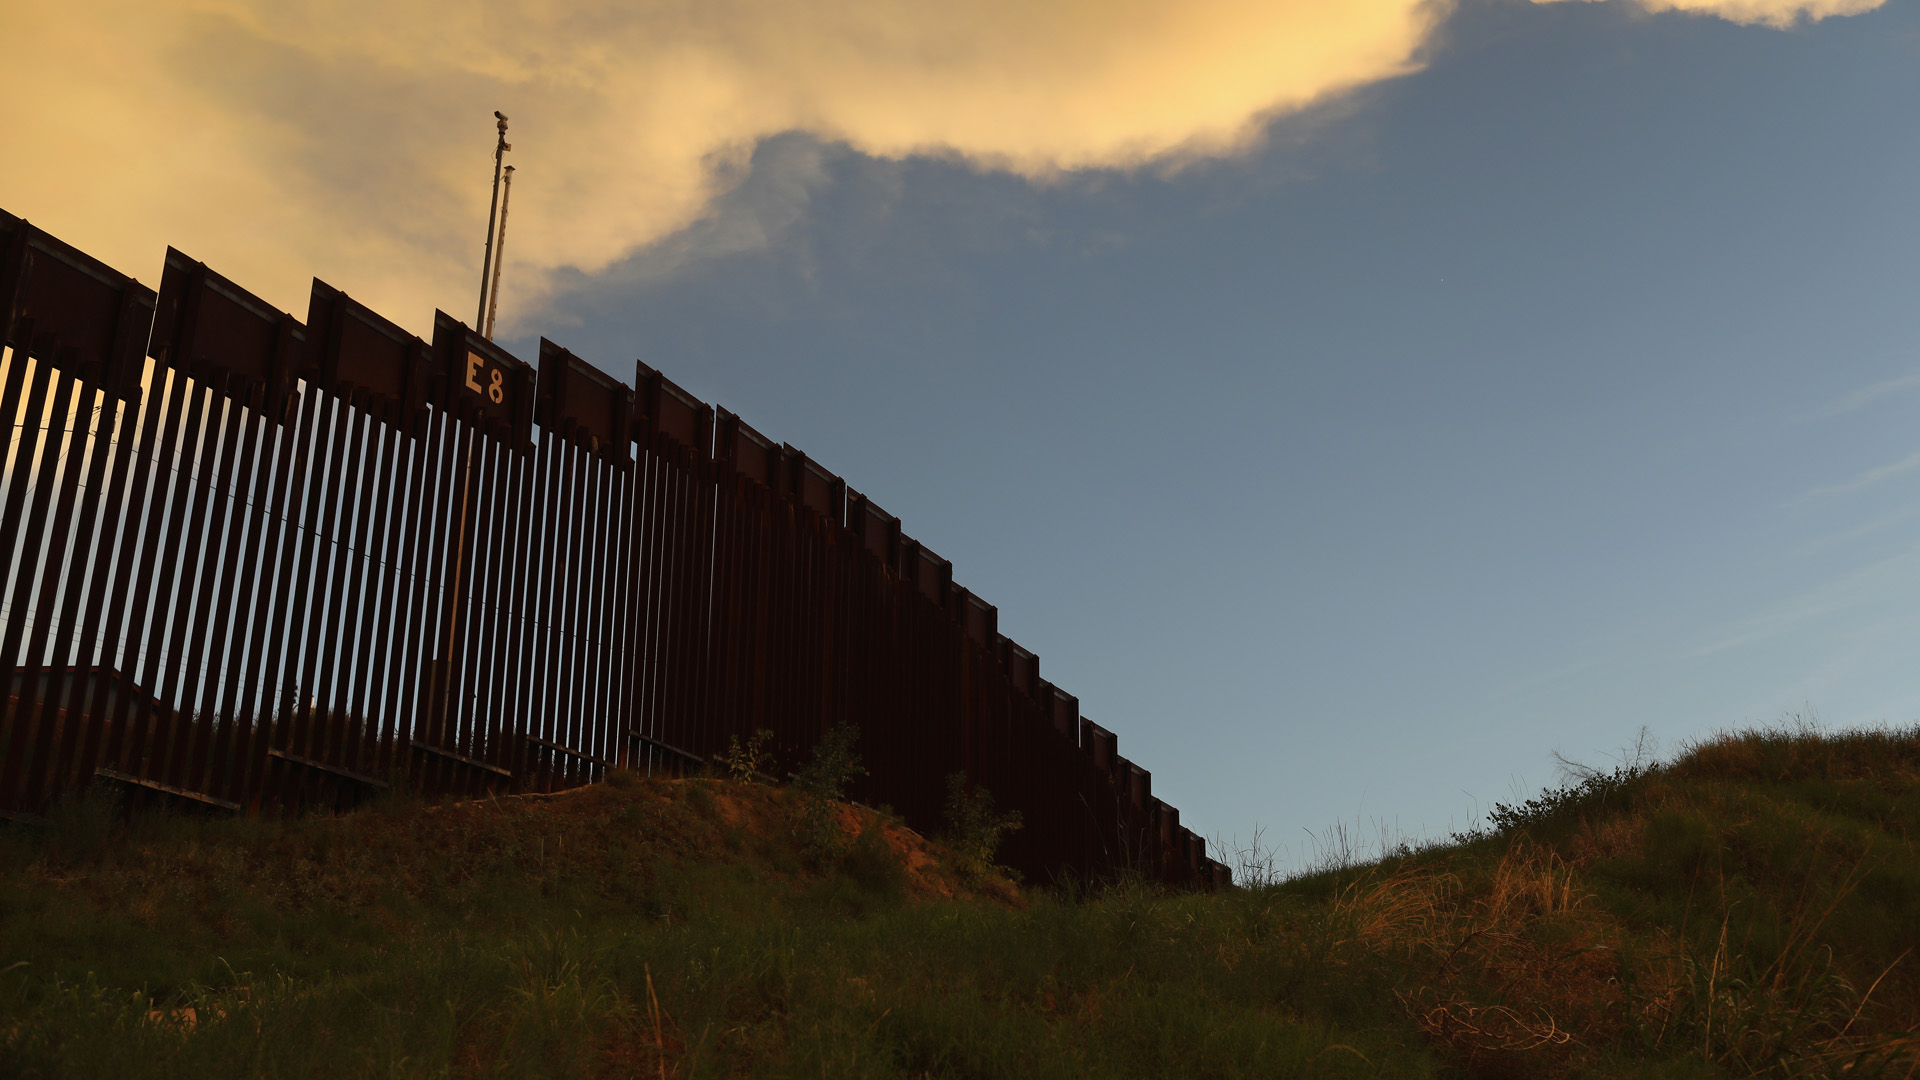 The fence marking the U.S.-Mexico border is seen at sunset on July 22, 2018 in Nogales, Arizona. (Credit: John Moore/Getty Images)